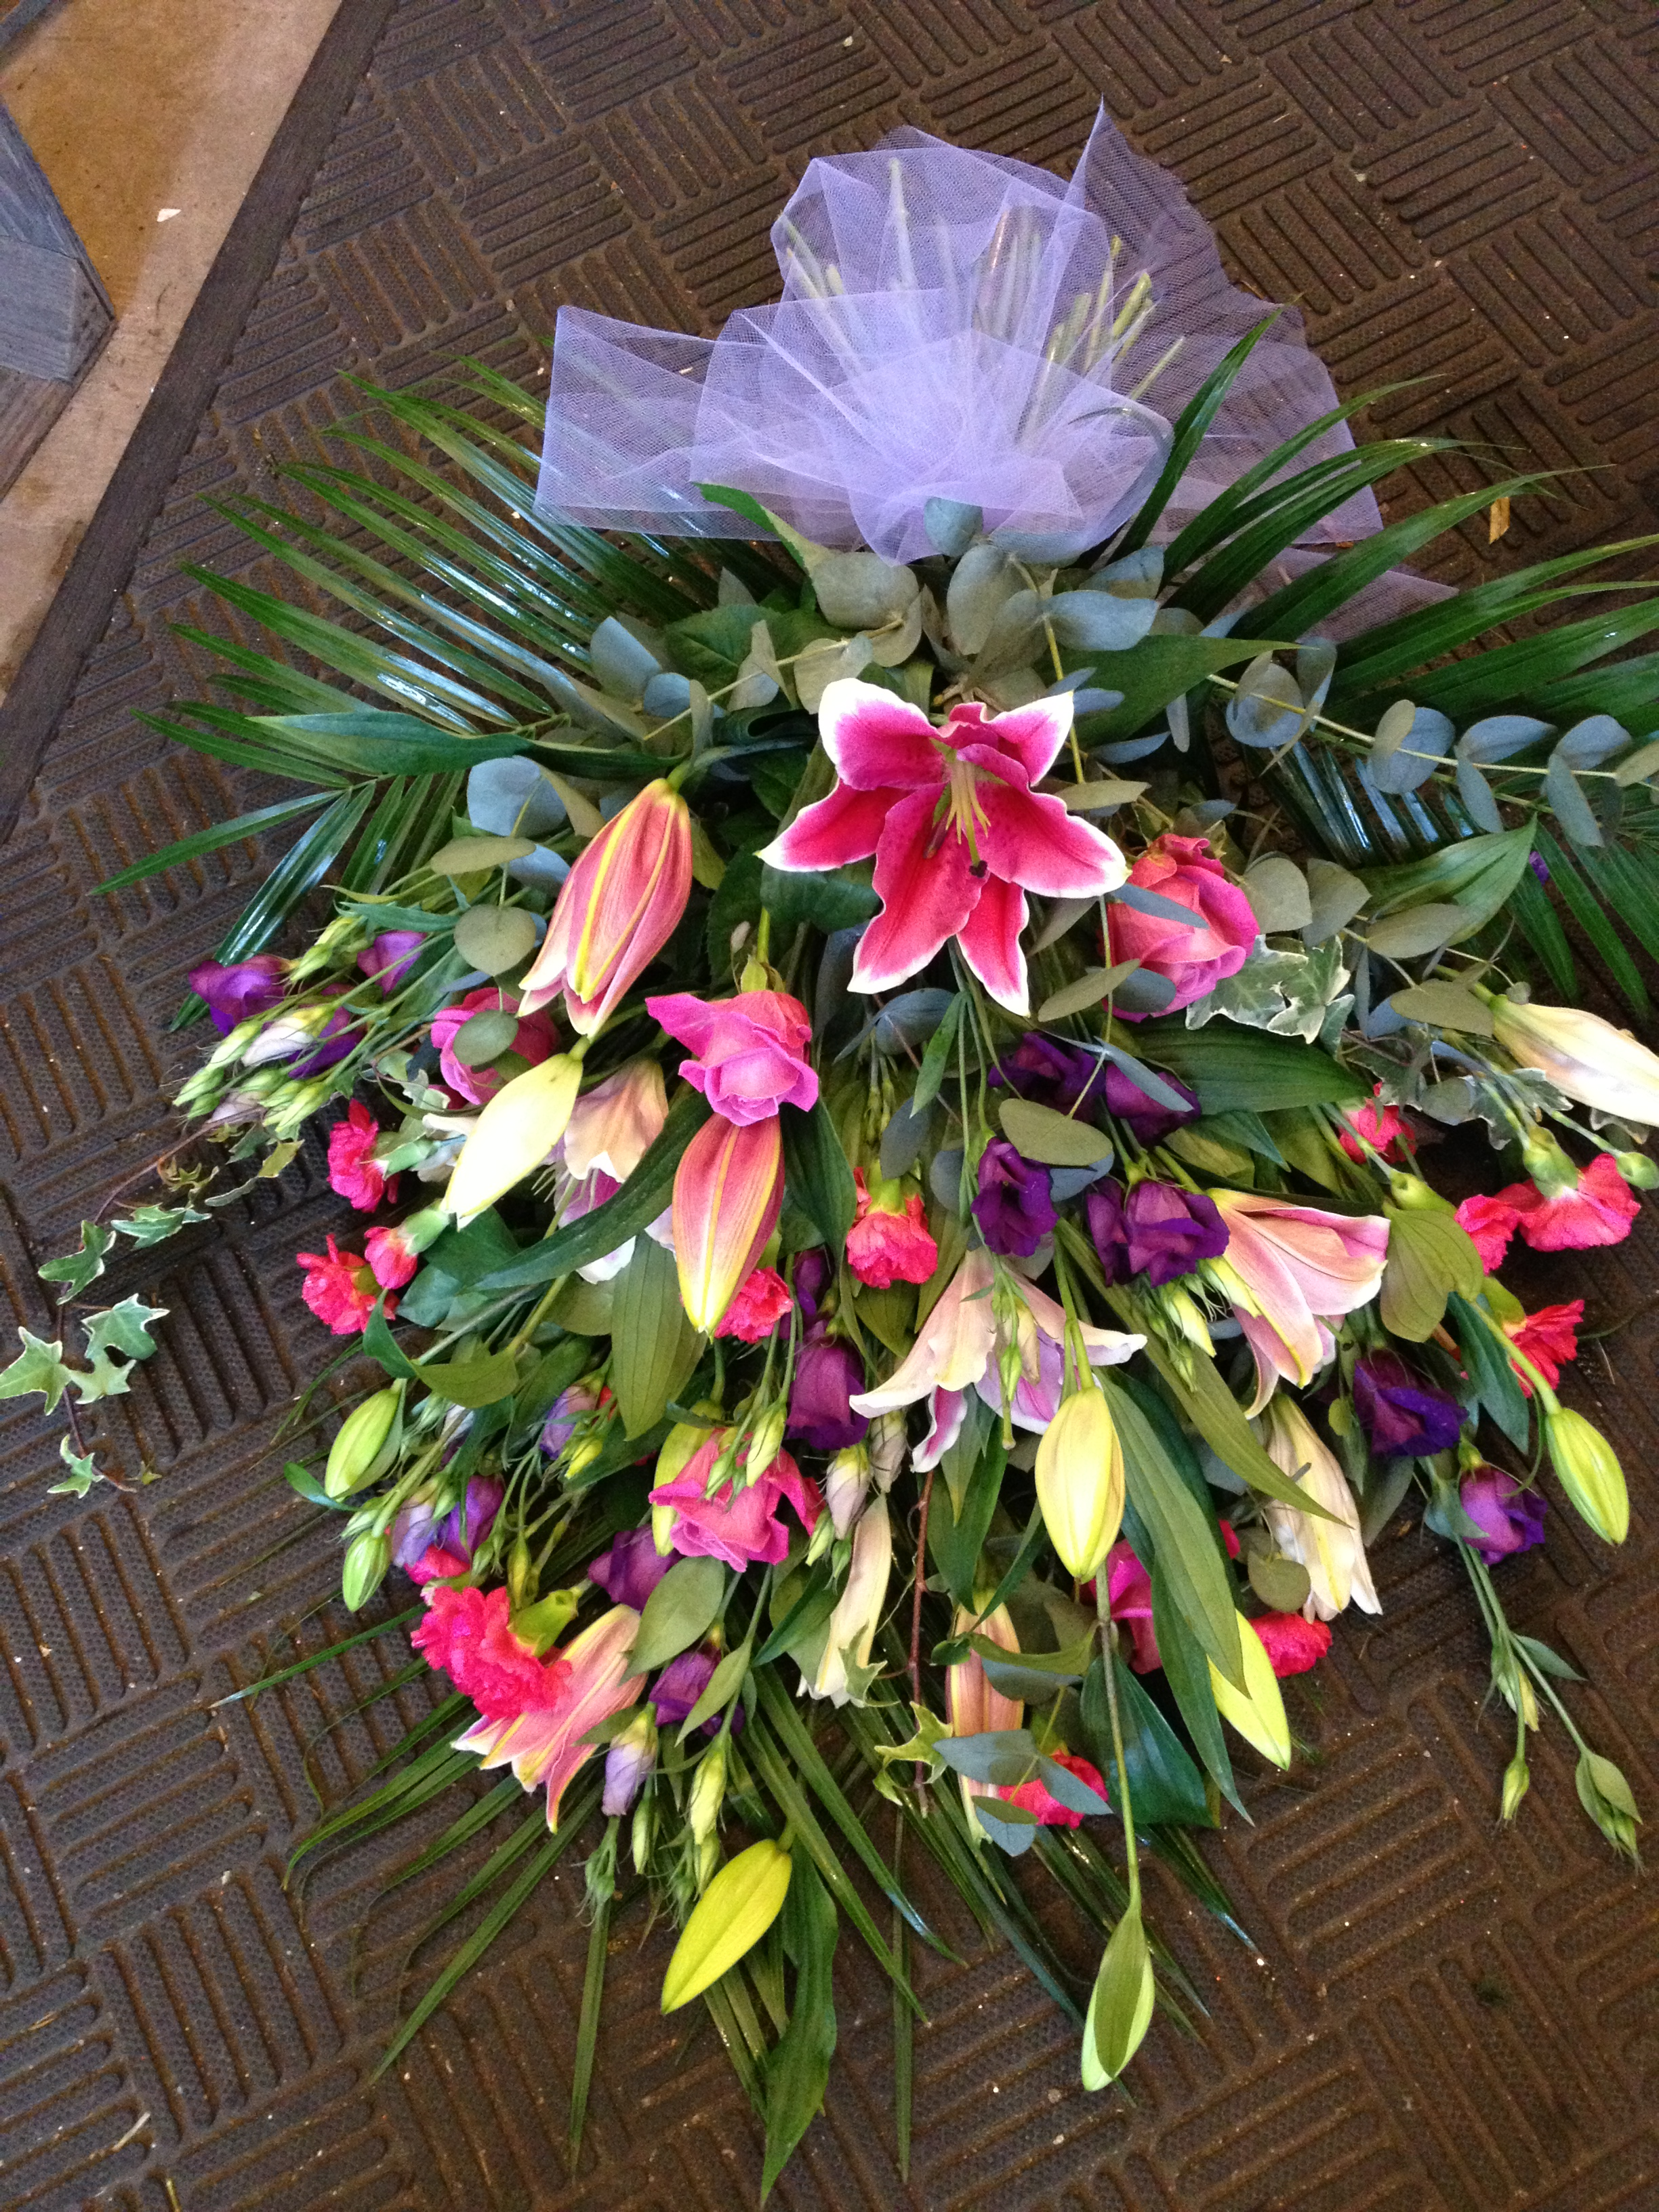 Gallery of funeral florist displays flower arrangements wreaths funeral flower arrangements izmirmasajfo